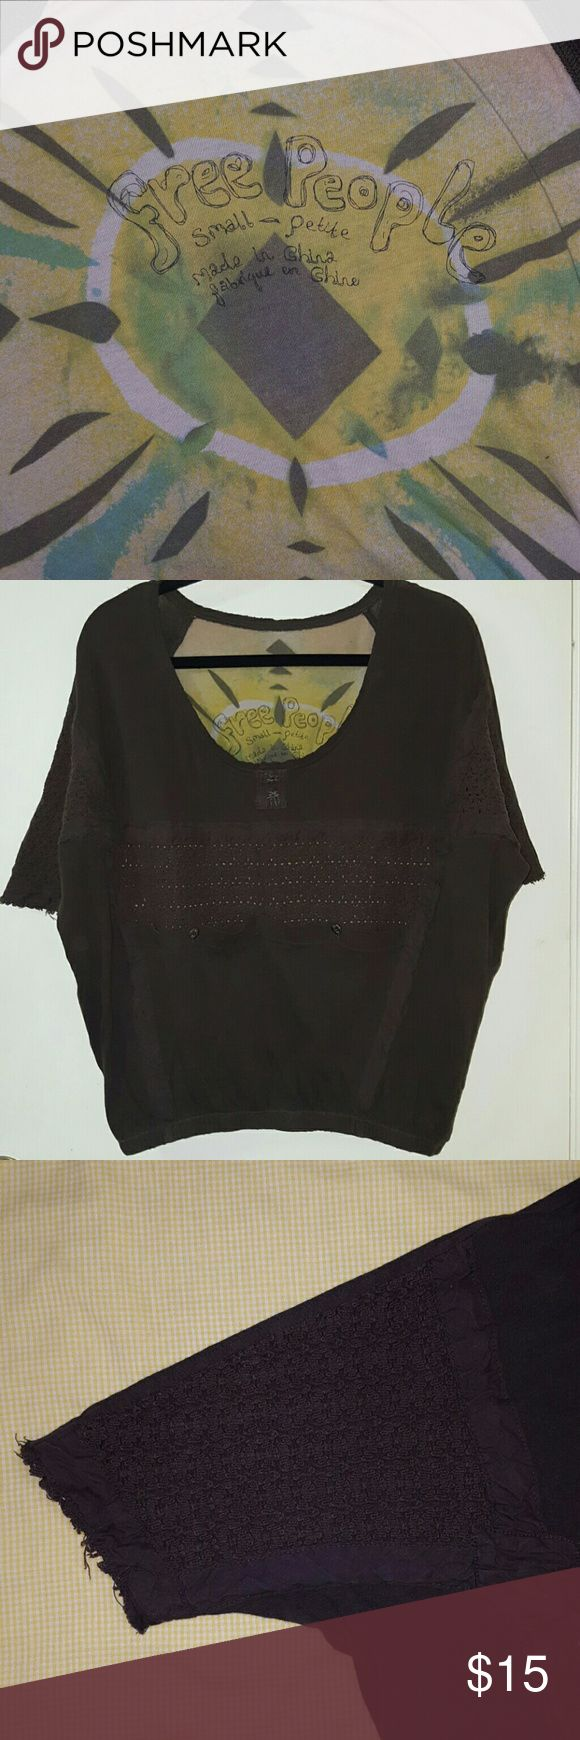 Free People Boxy Top FP vintage boxy knit top. Size small and brown in color. It is brown all around but the inside back has a free people colorful design.  Has some crochet detail on sleeves and in the front where 2 front pockets are located. Used with no holes or snags and still has lits of life left.  Super cute!! Free People Tops